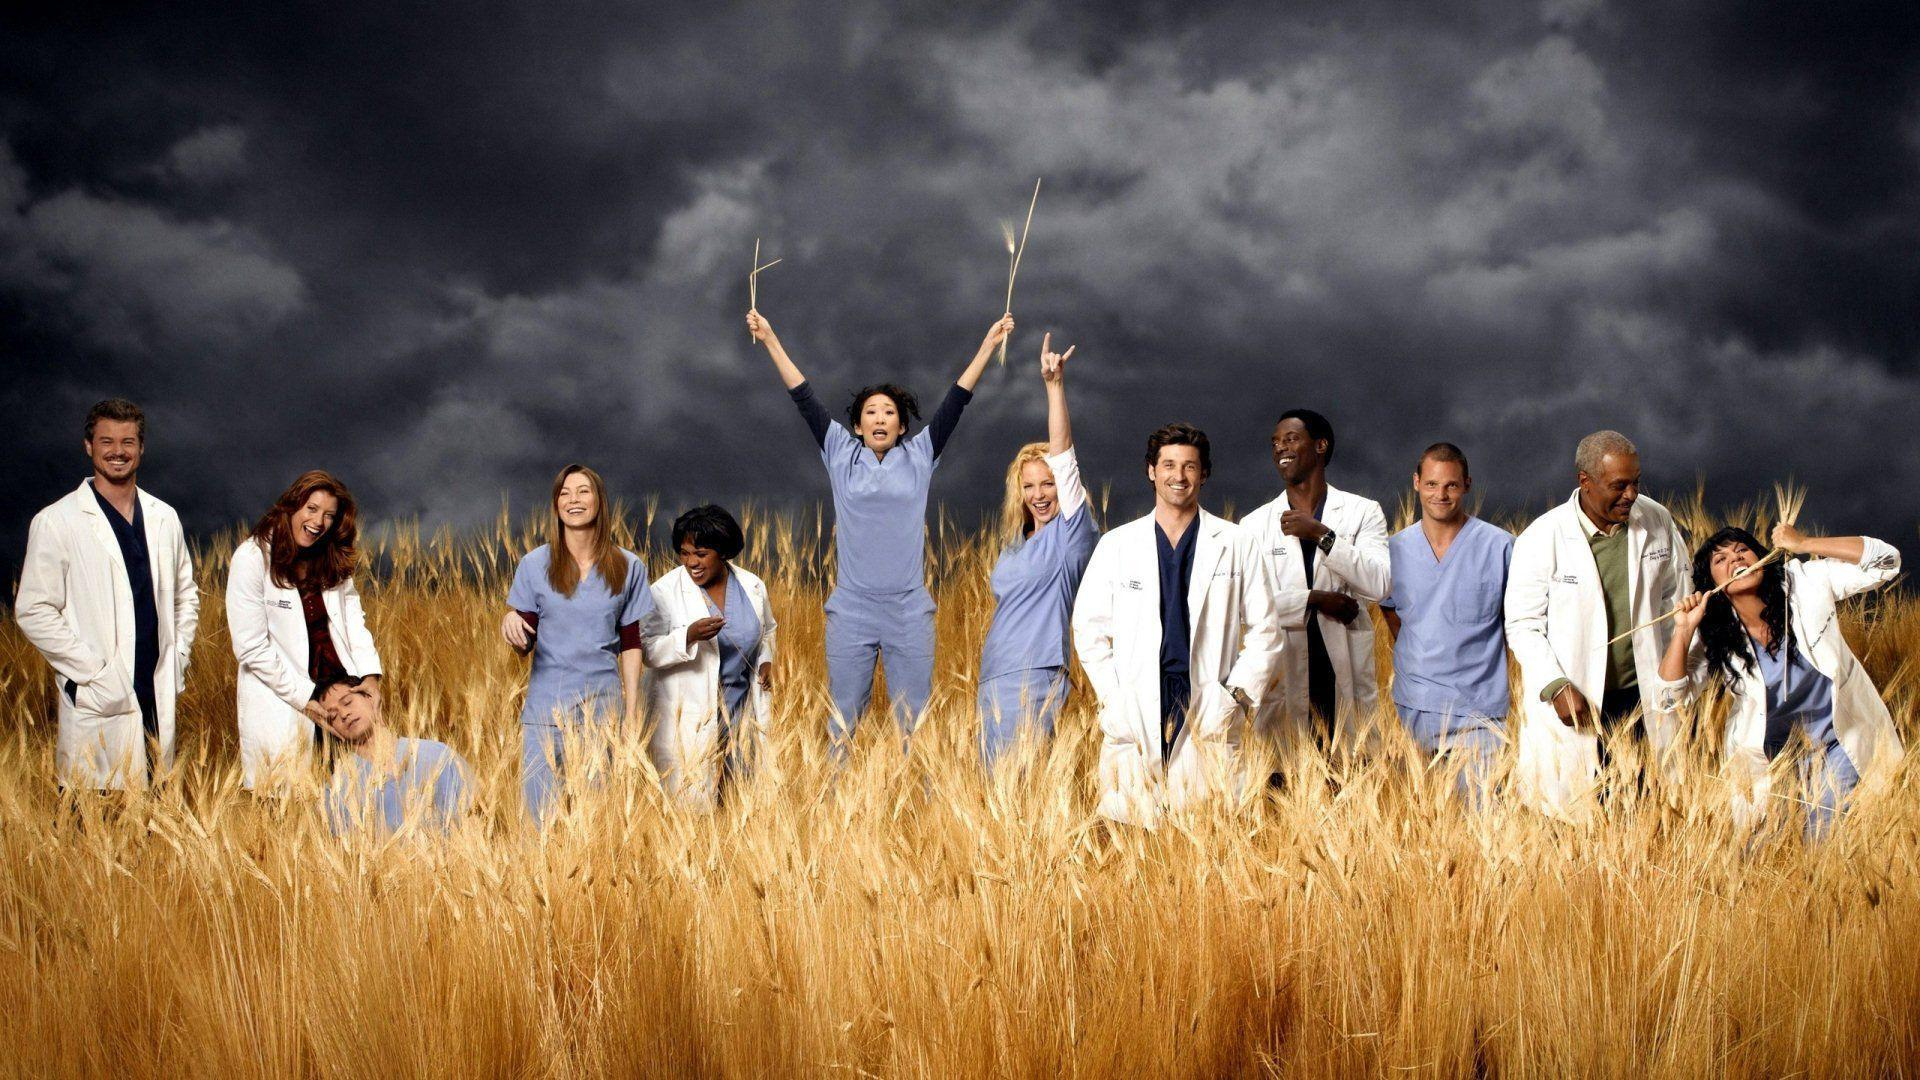 14 Grey's Anatomy HD Wallpapers | Backgrounds - Wallpaper Abyss